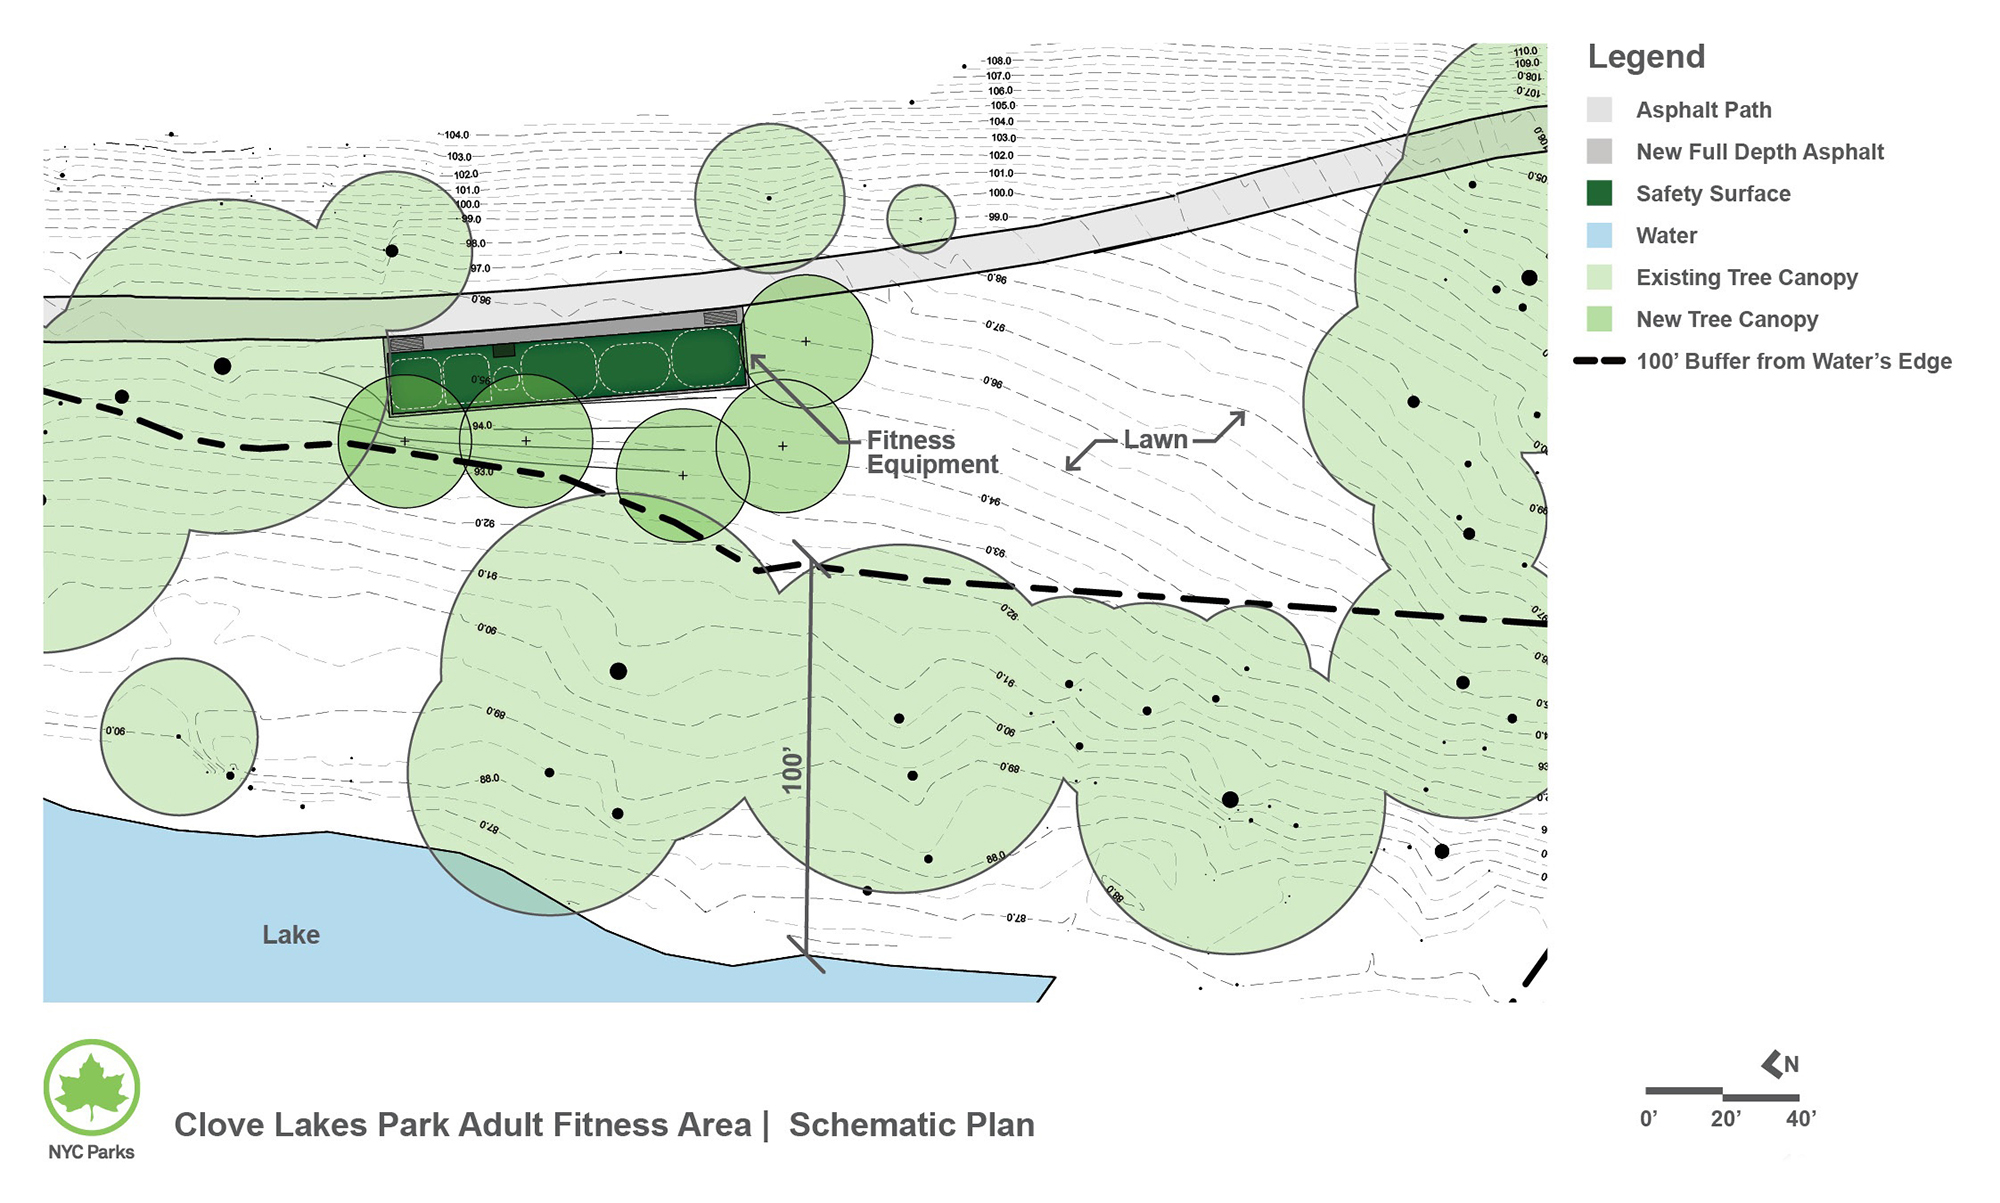 Design of Clove Lakes Park Fitness Equipment Reconstruction